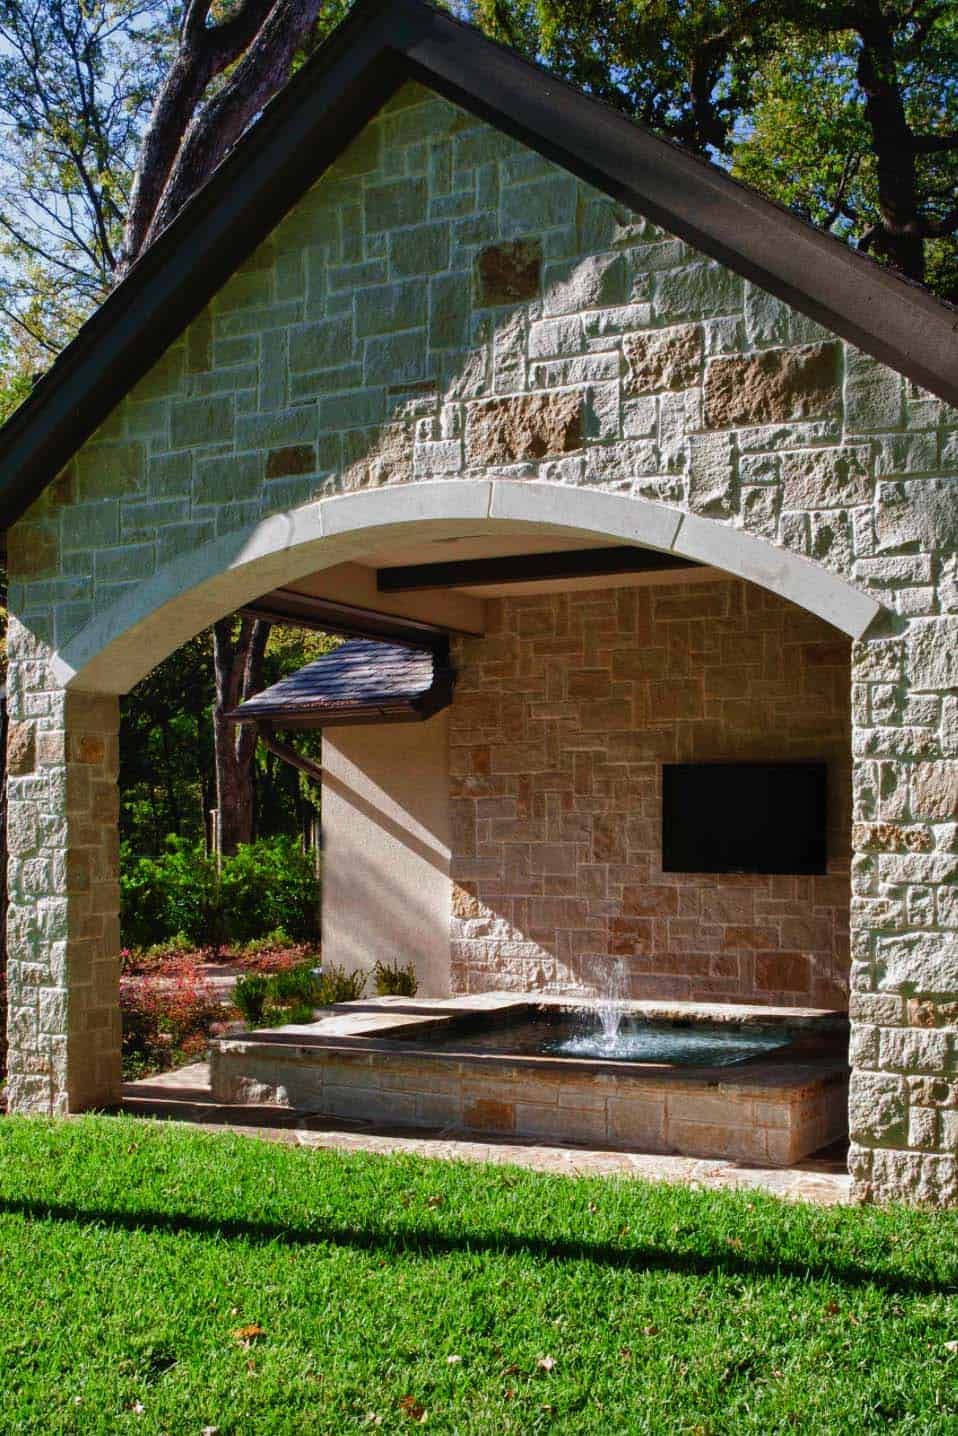 40+ Outstanding Hot Tub Ideas To Create A Backyard Oasis